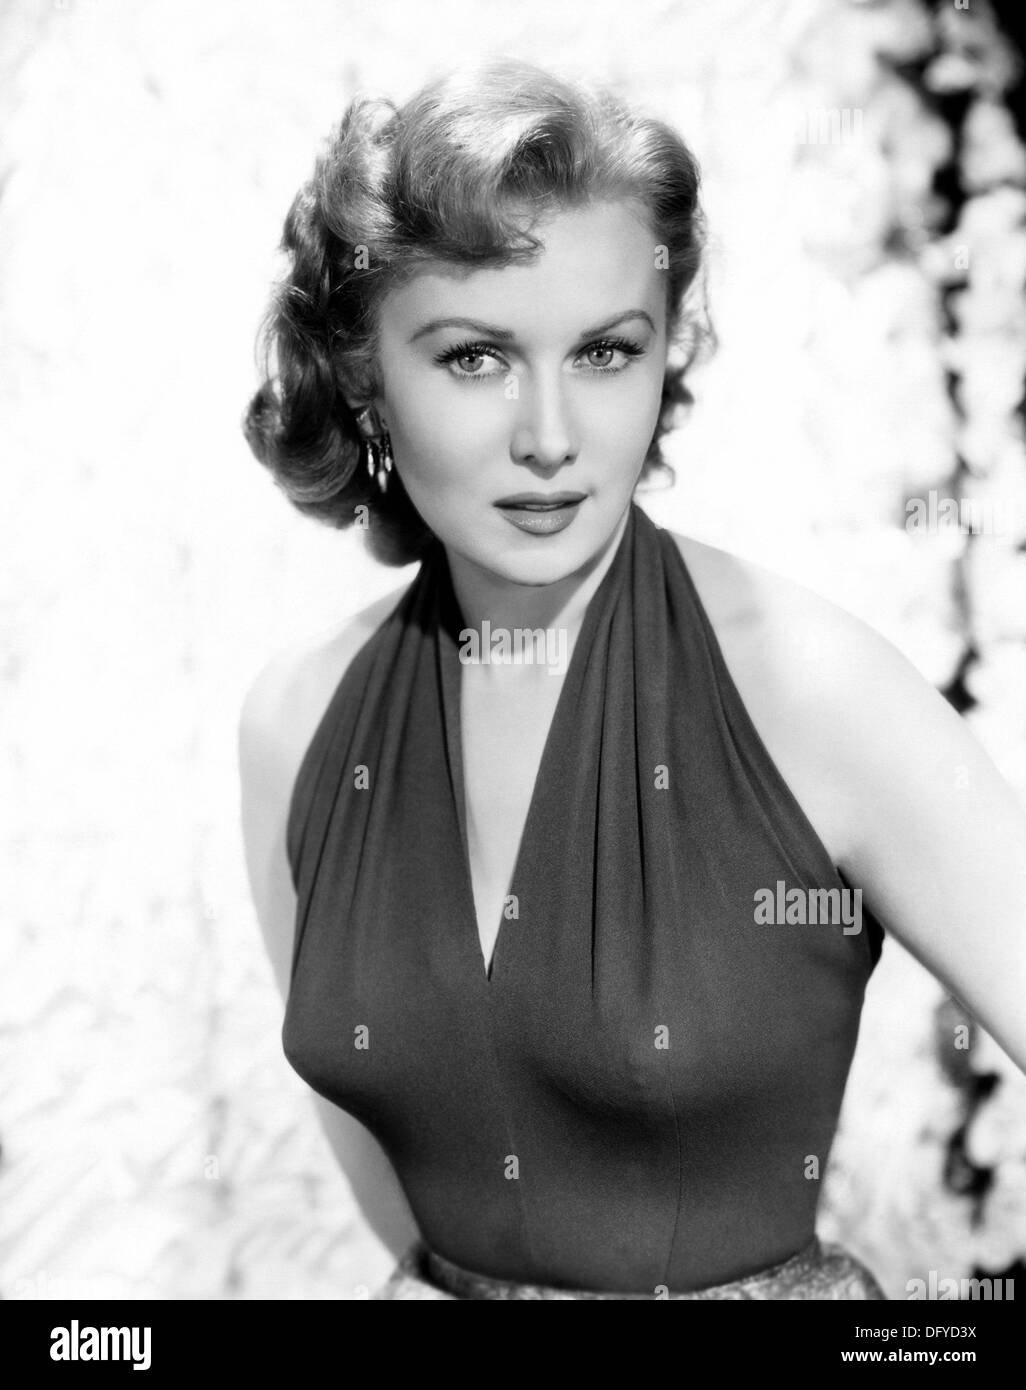 TROPIC ZONE 1953 Paramount Pictures film with Rhonda Fleming - Stock Image